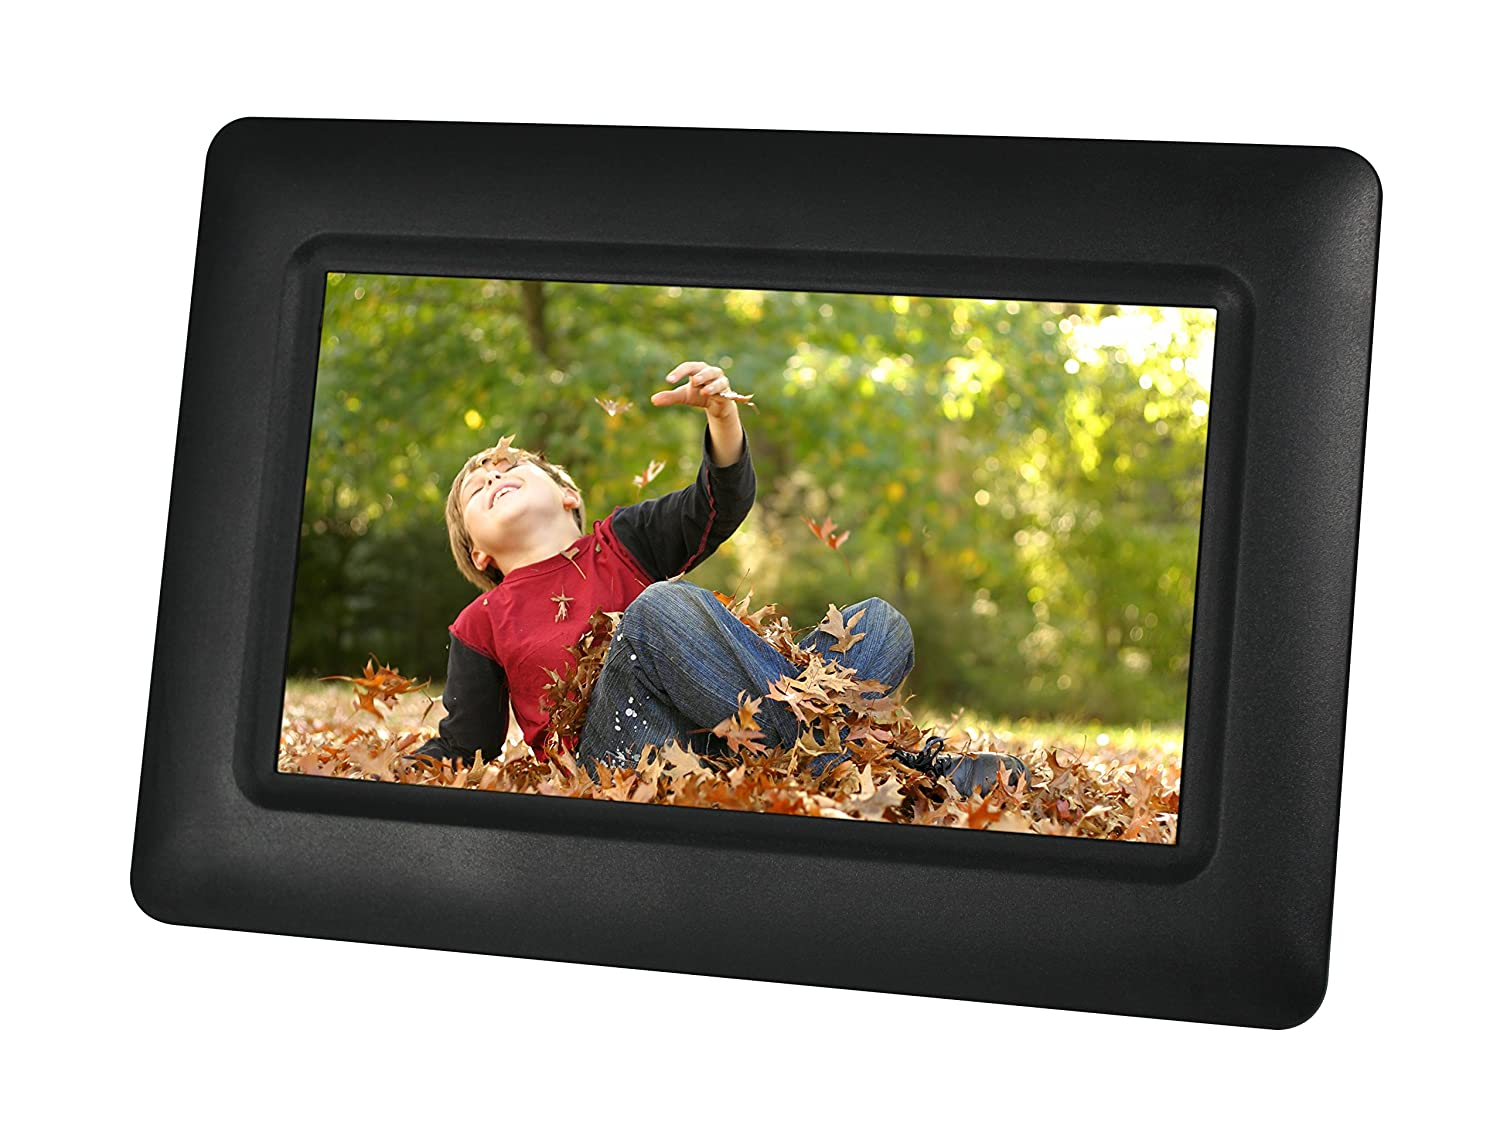 Sylvania SDPF7977 7-Inch Stainless Steel Digital Photo Frame Stainless Steel